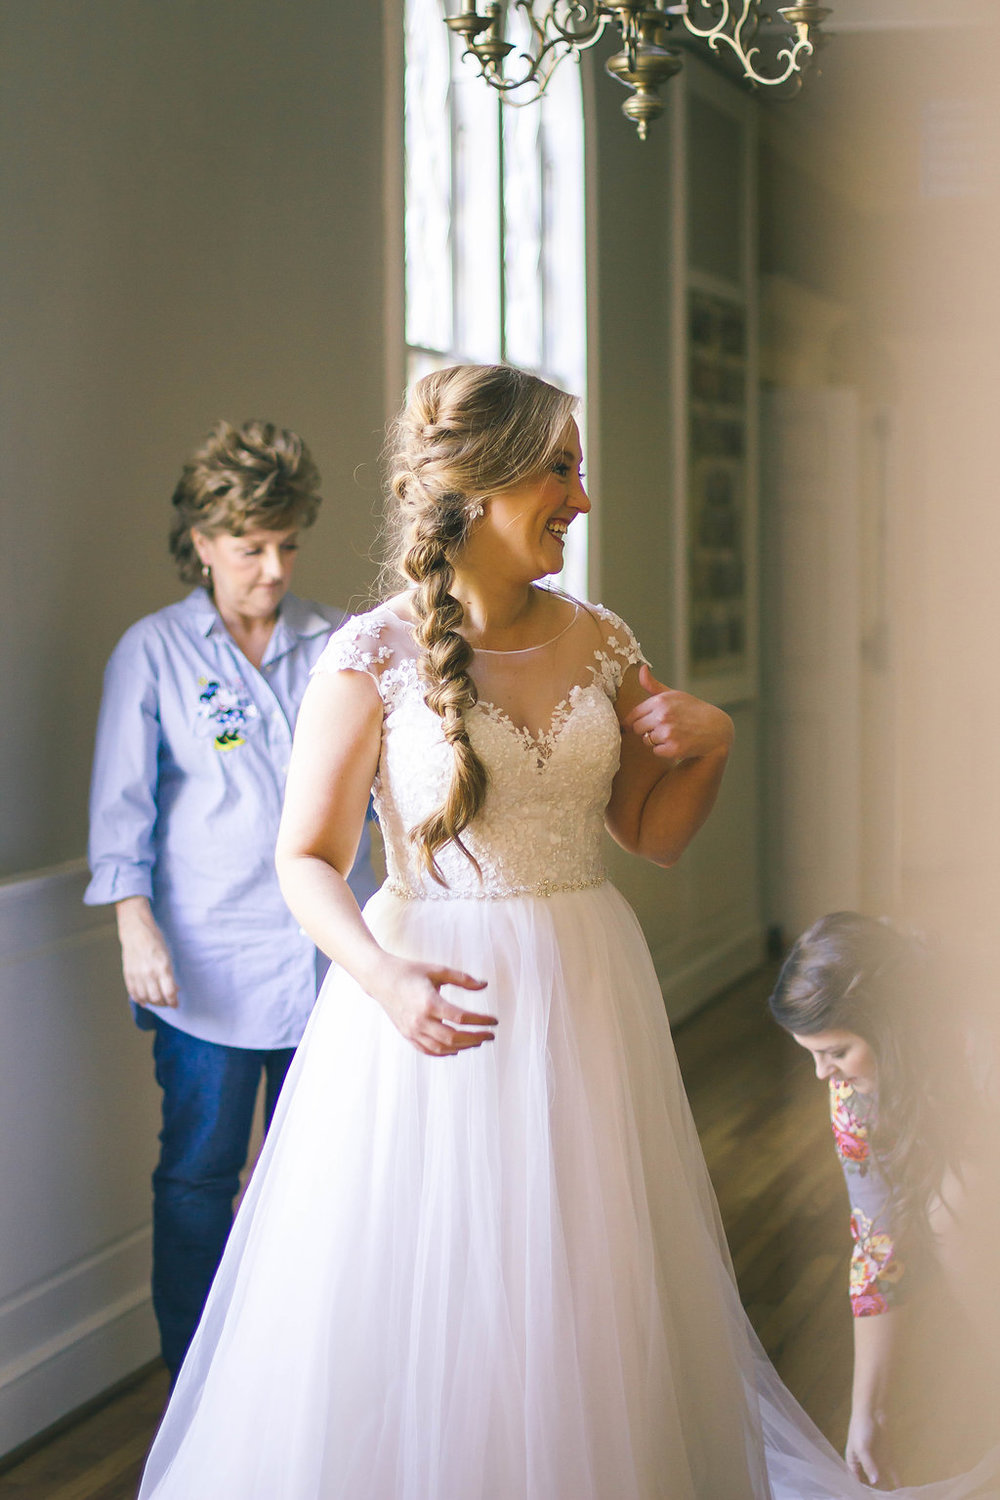 PAIGE'S AWE-INSPRING AUGUSTA WEDDING